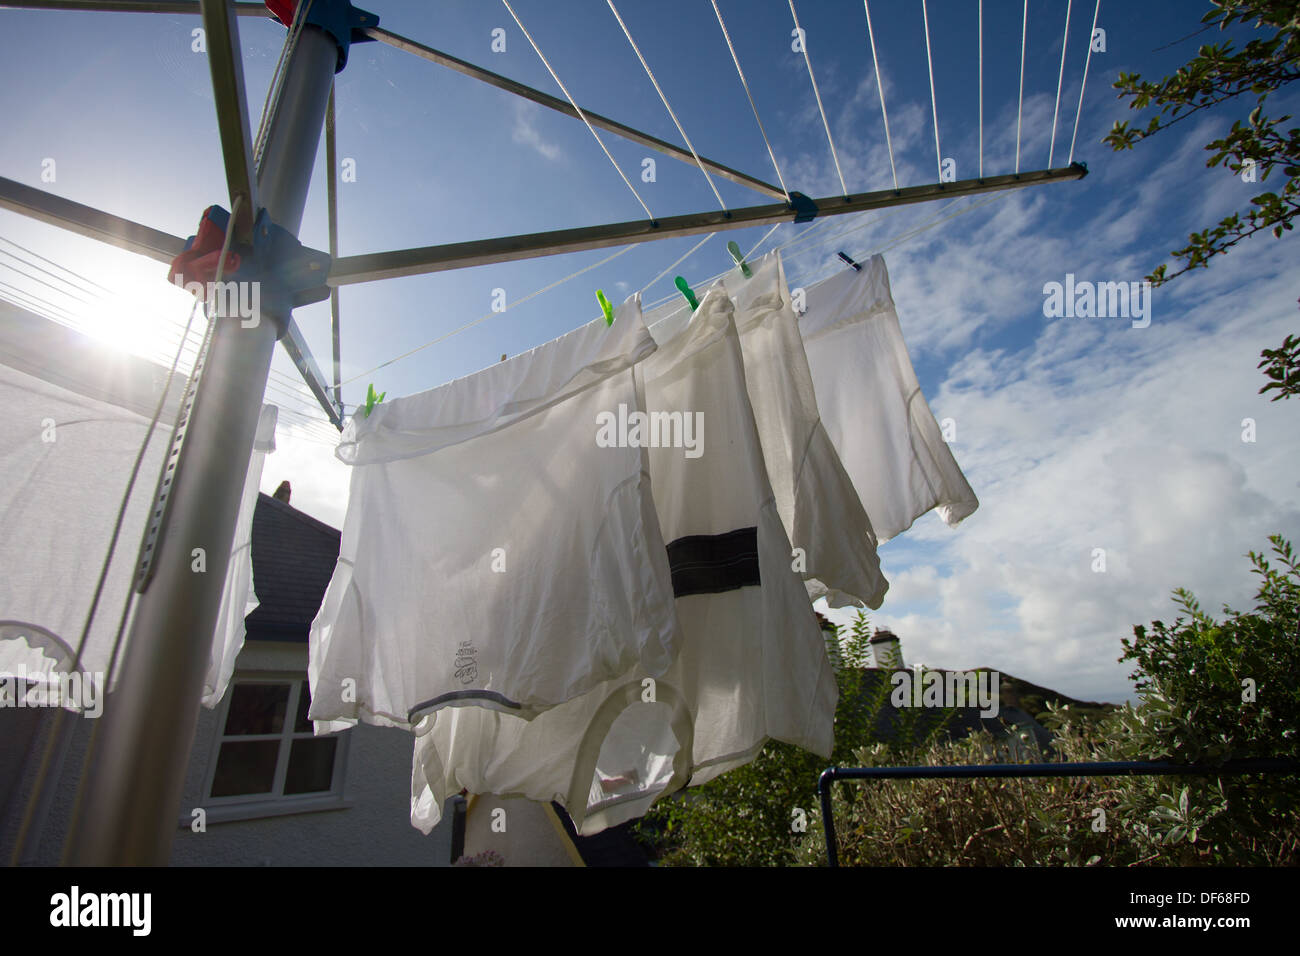 White tee-shirts hanging on a rotary drier, in a garden, blue sky and white clouds in the background - Stock Image